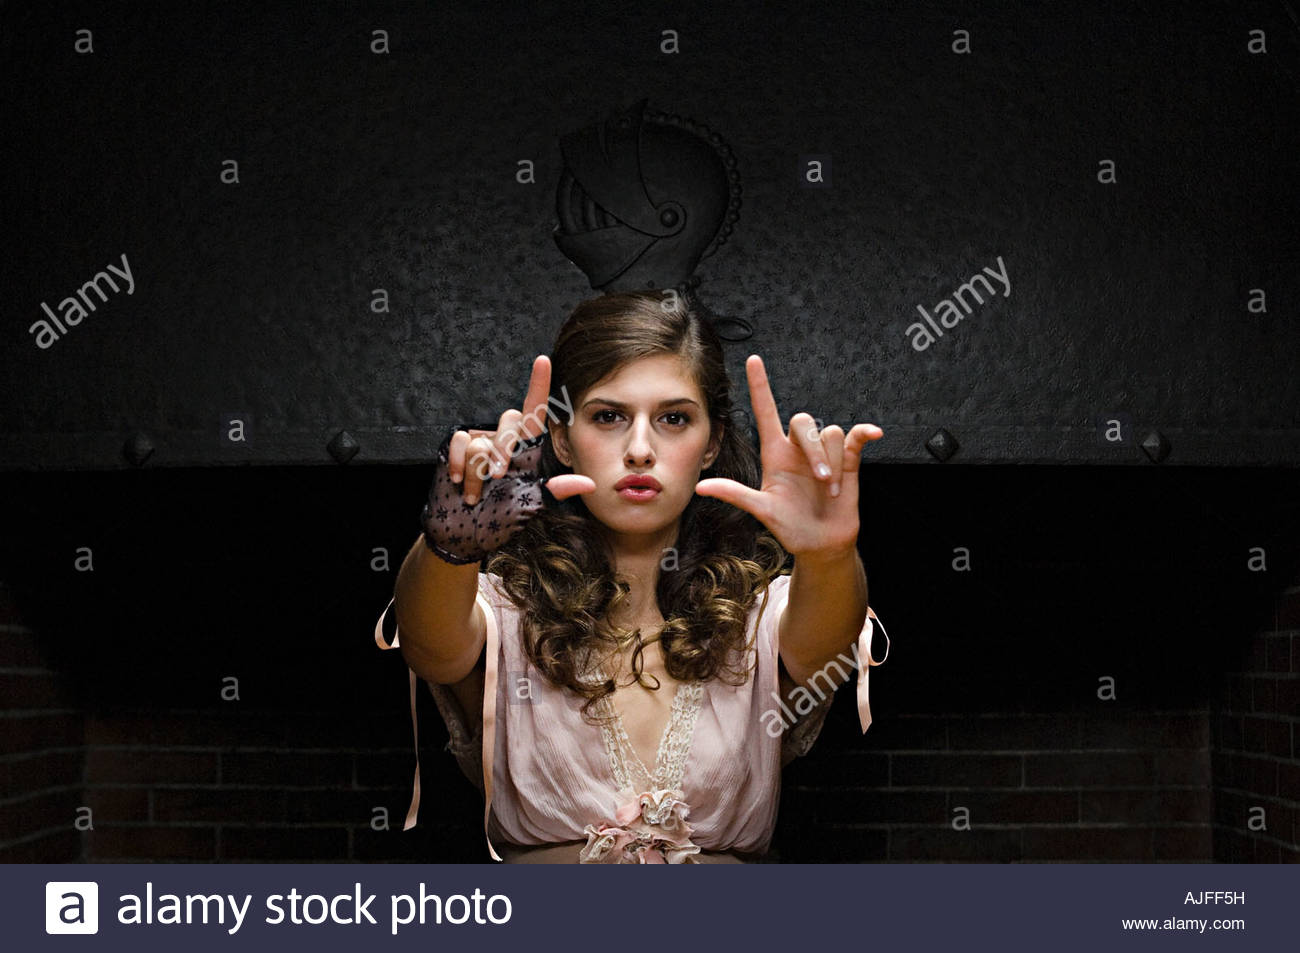 Hispanic woman making hand gestures - Stock Image